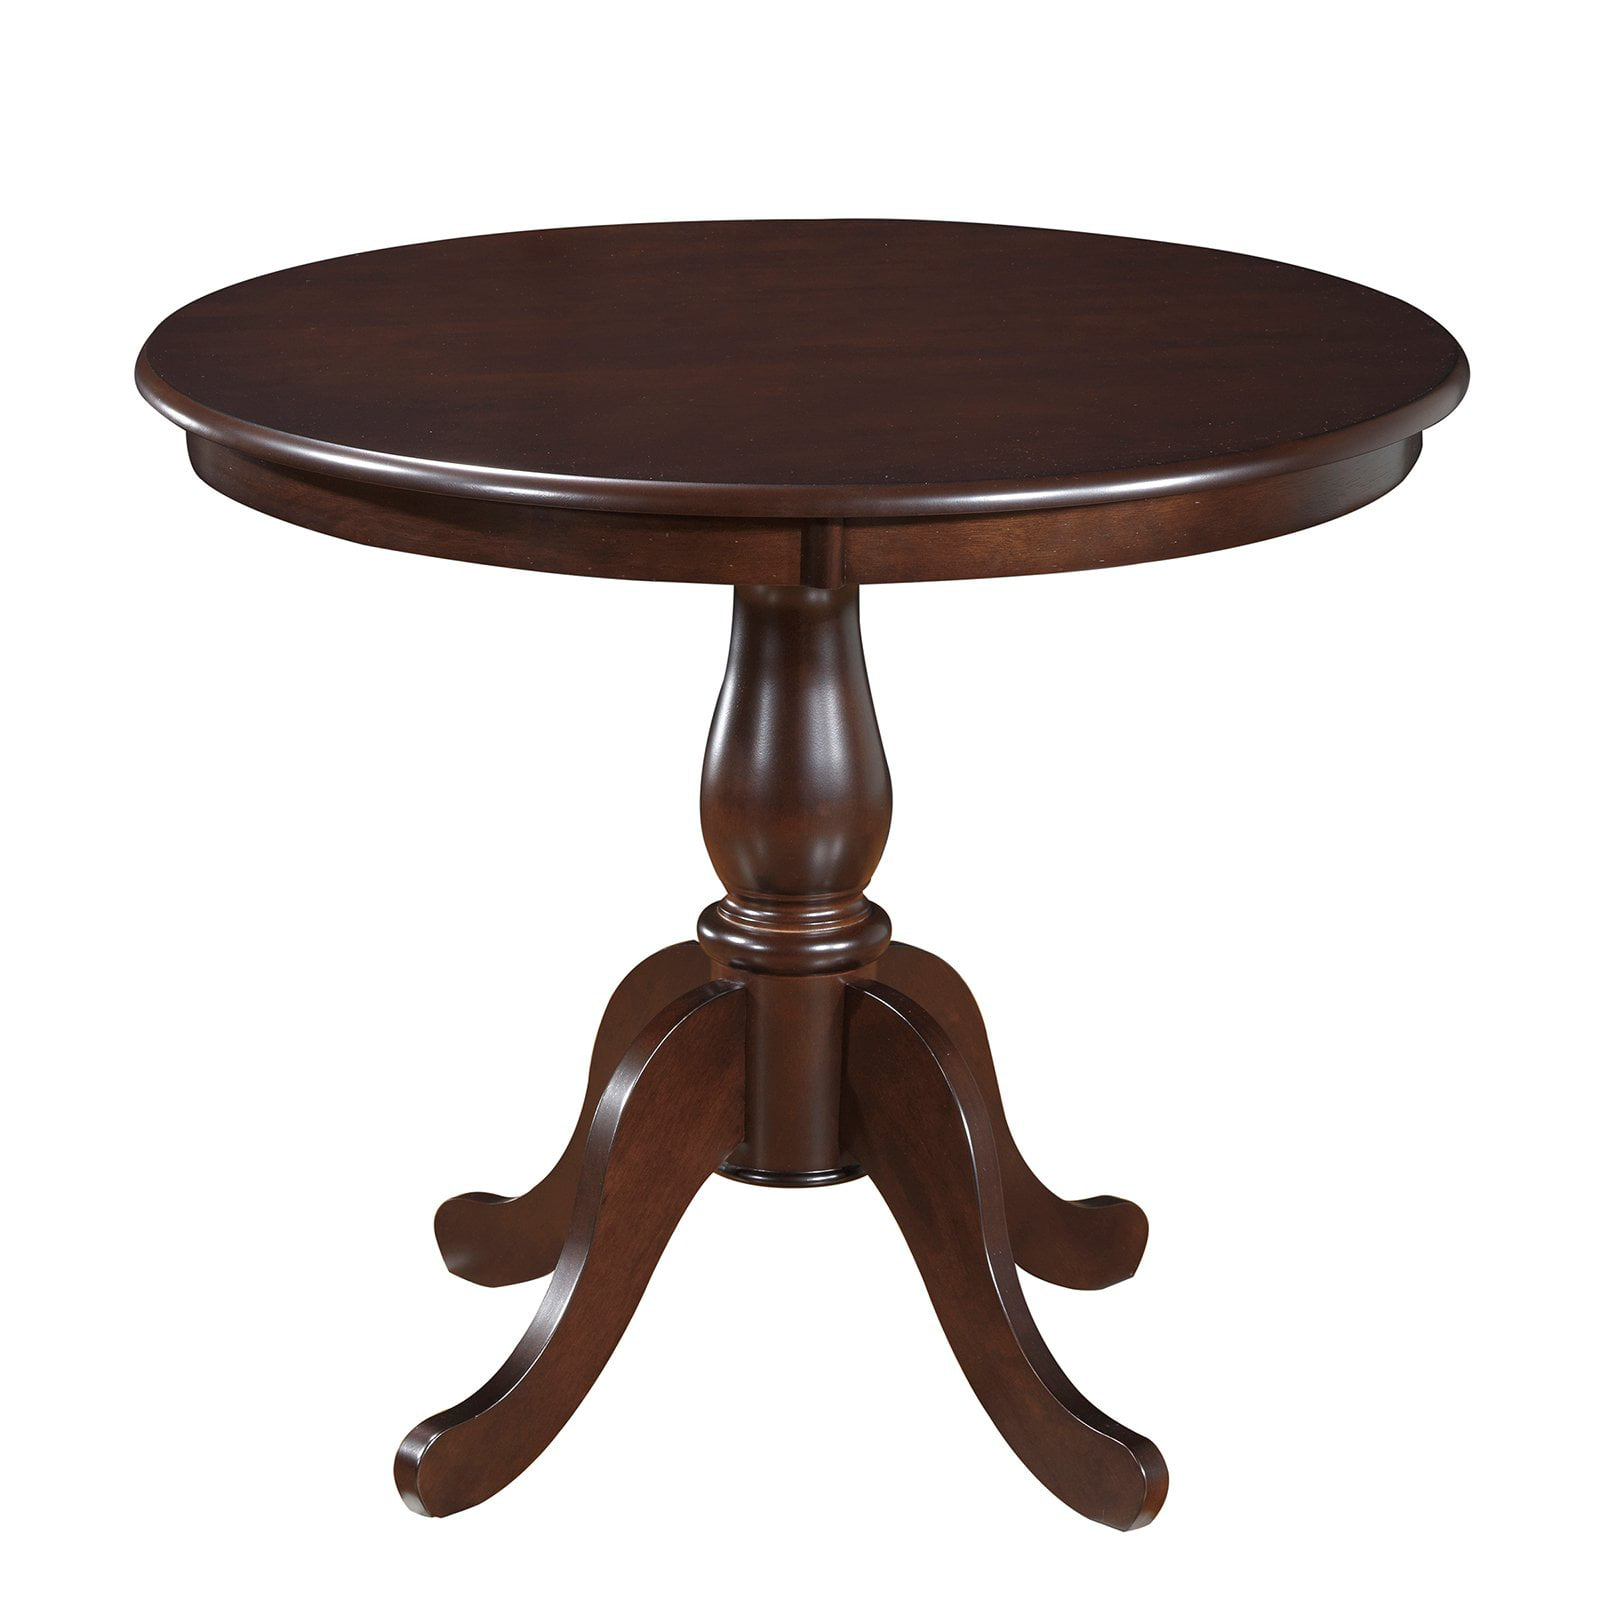 Carolina Winston 36 in. Round Pedestal Dining Table by Carolina Chair and Table Co